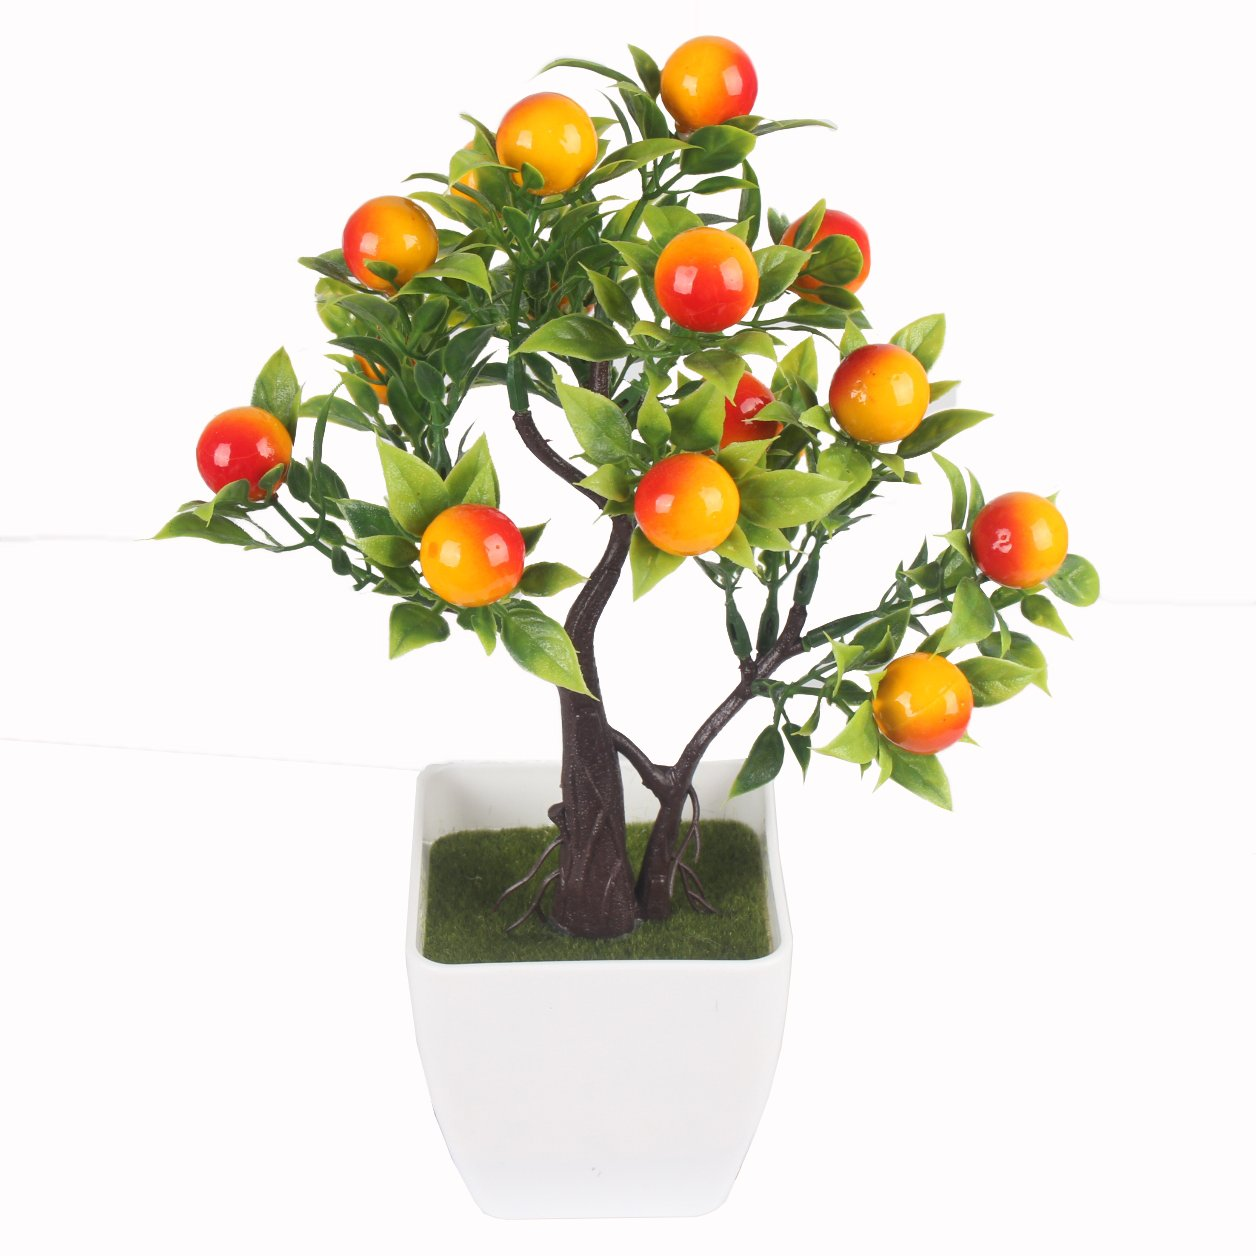 JAROWN Artificial Fruits Plants MINI Plastic Bonsai Lucky Tree Flowers for Home Office Table Decoration (Orange)